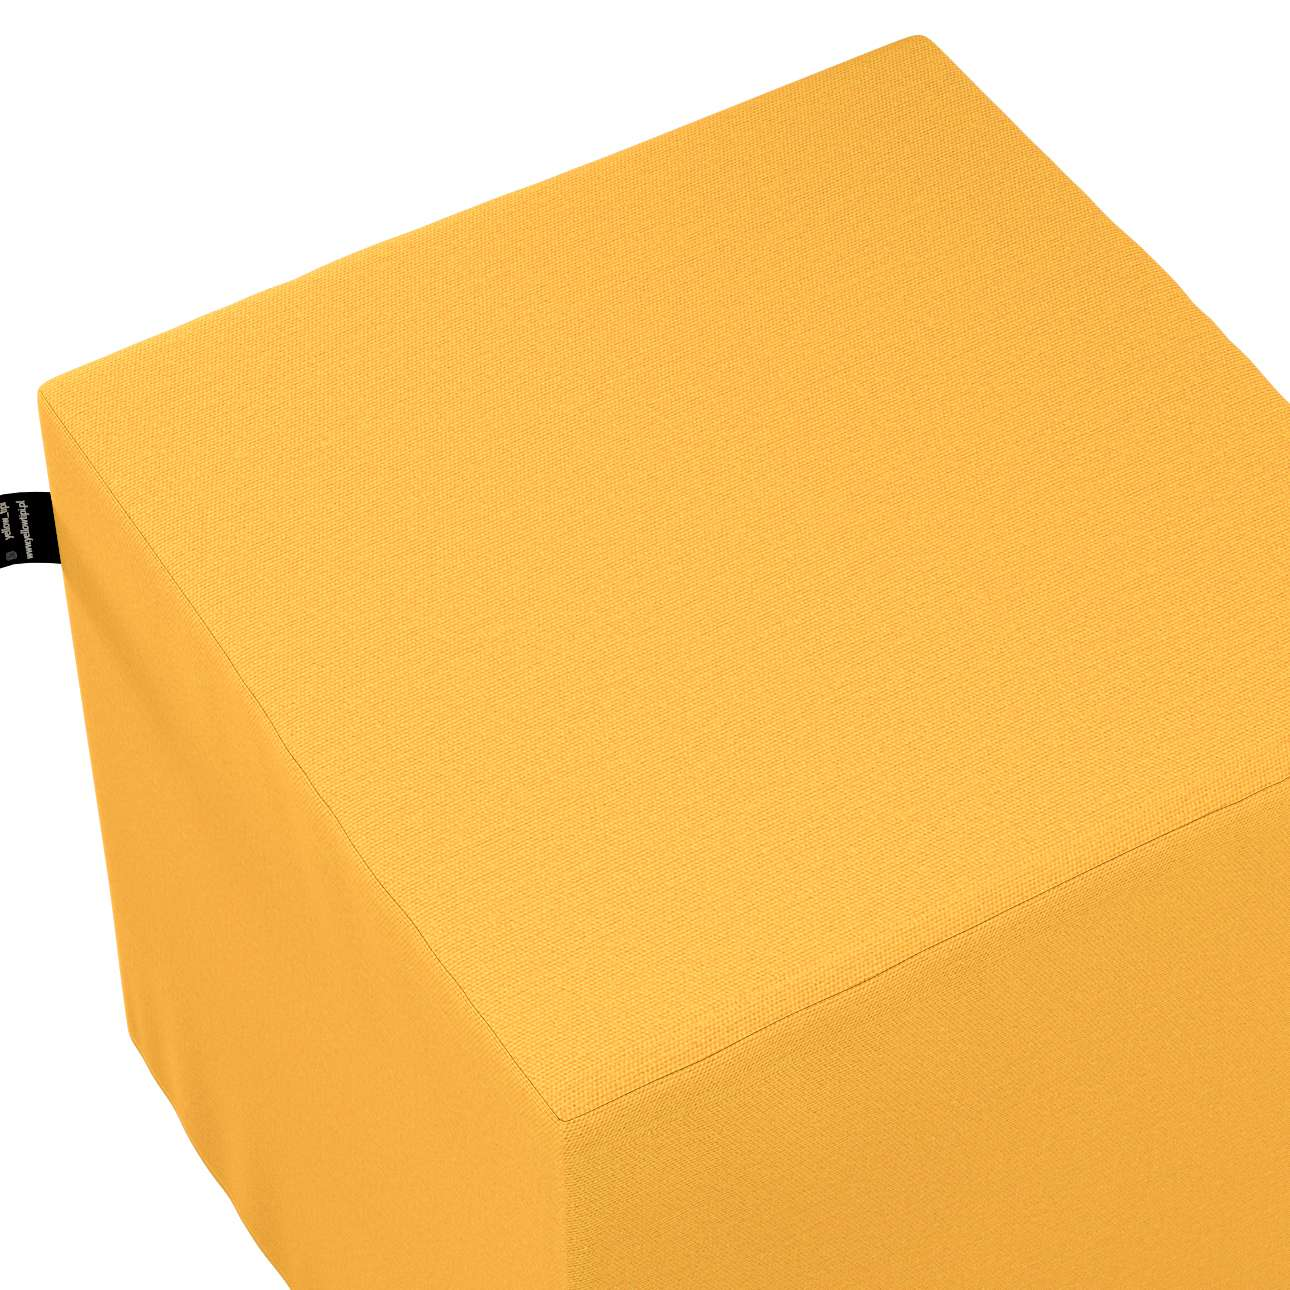 Nano cube pouf in collection Happiness, fabric: 133-40